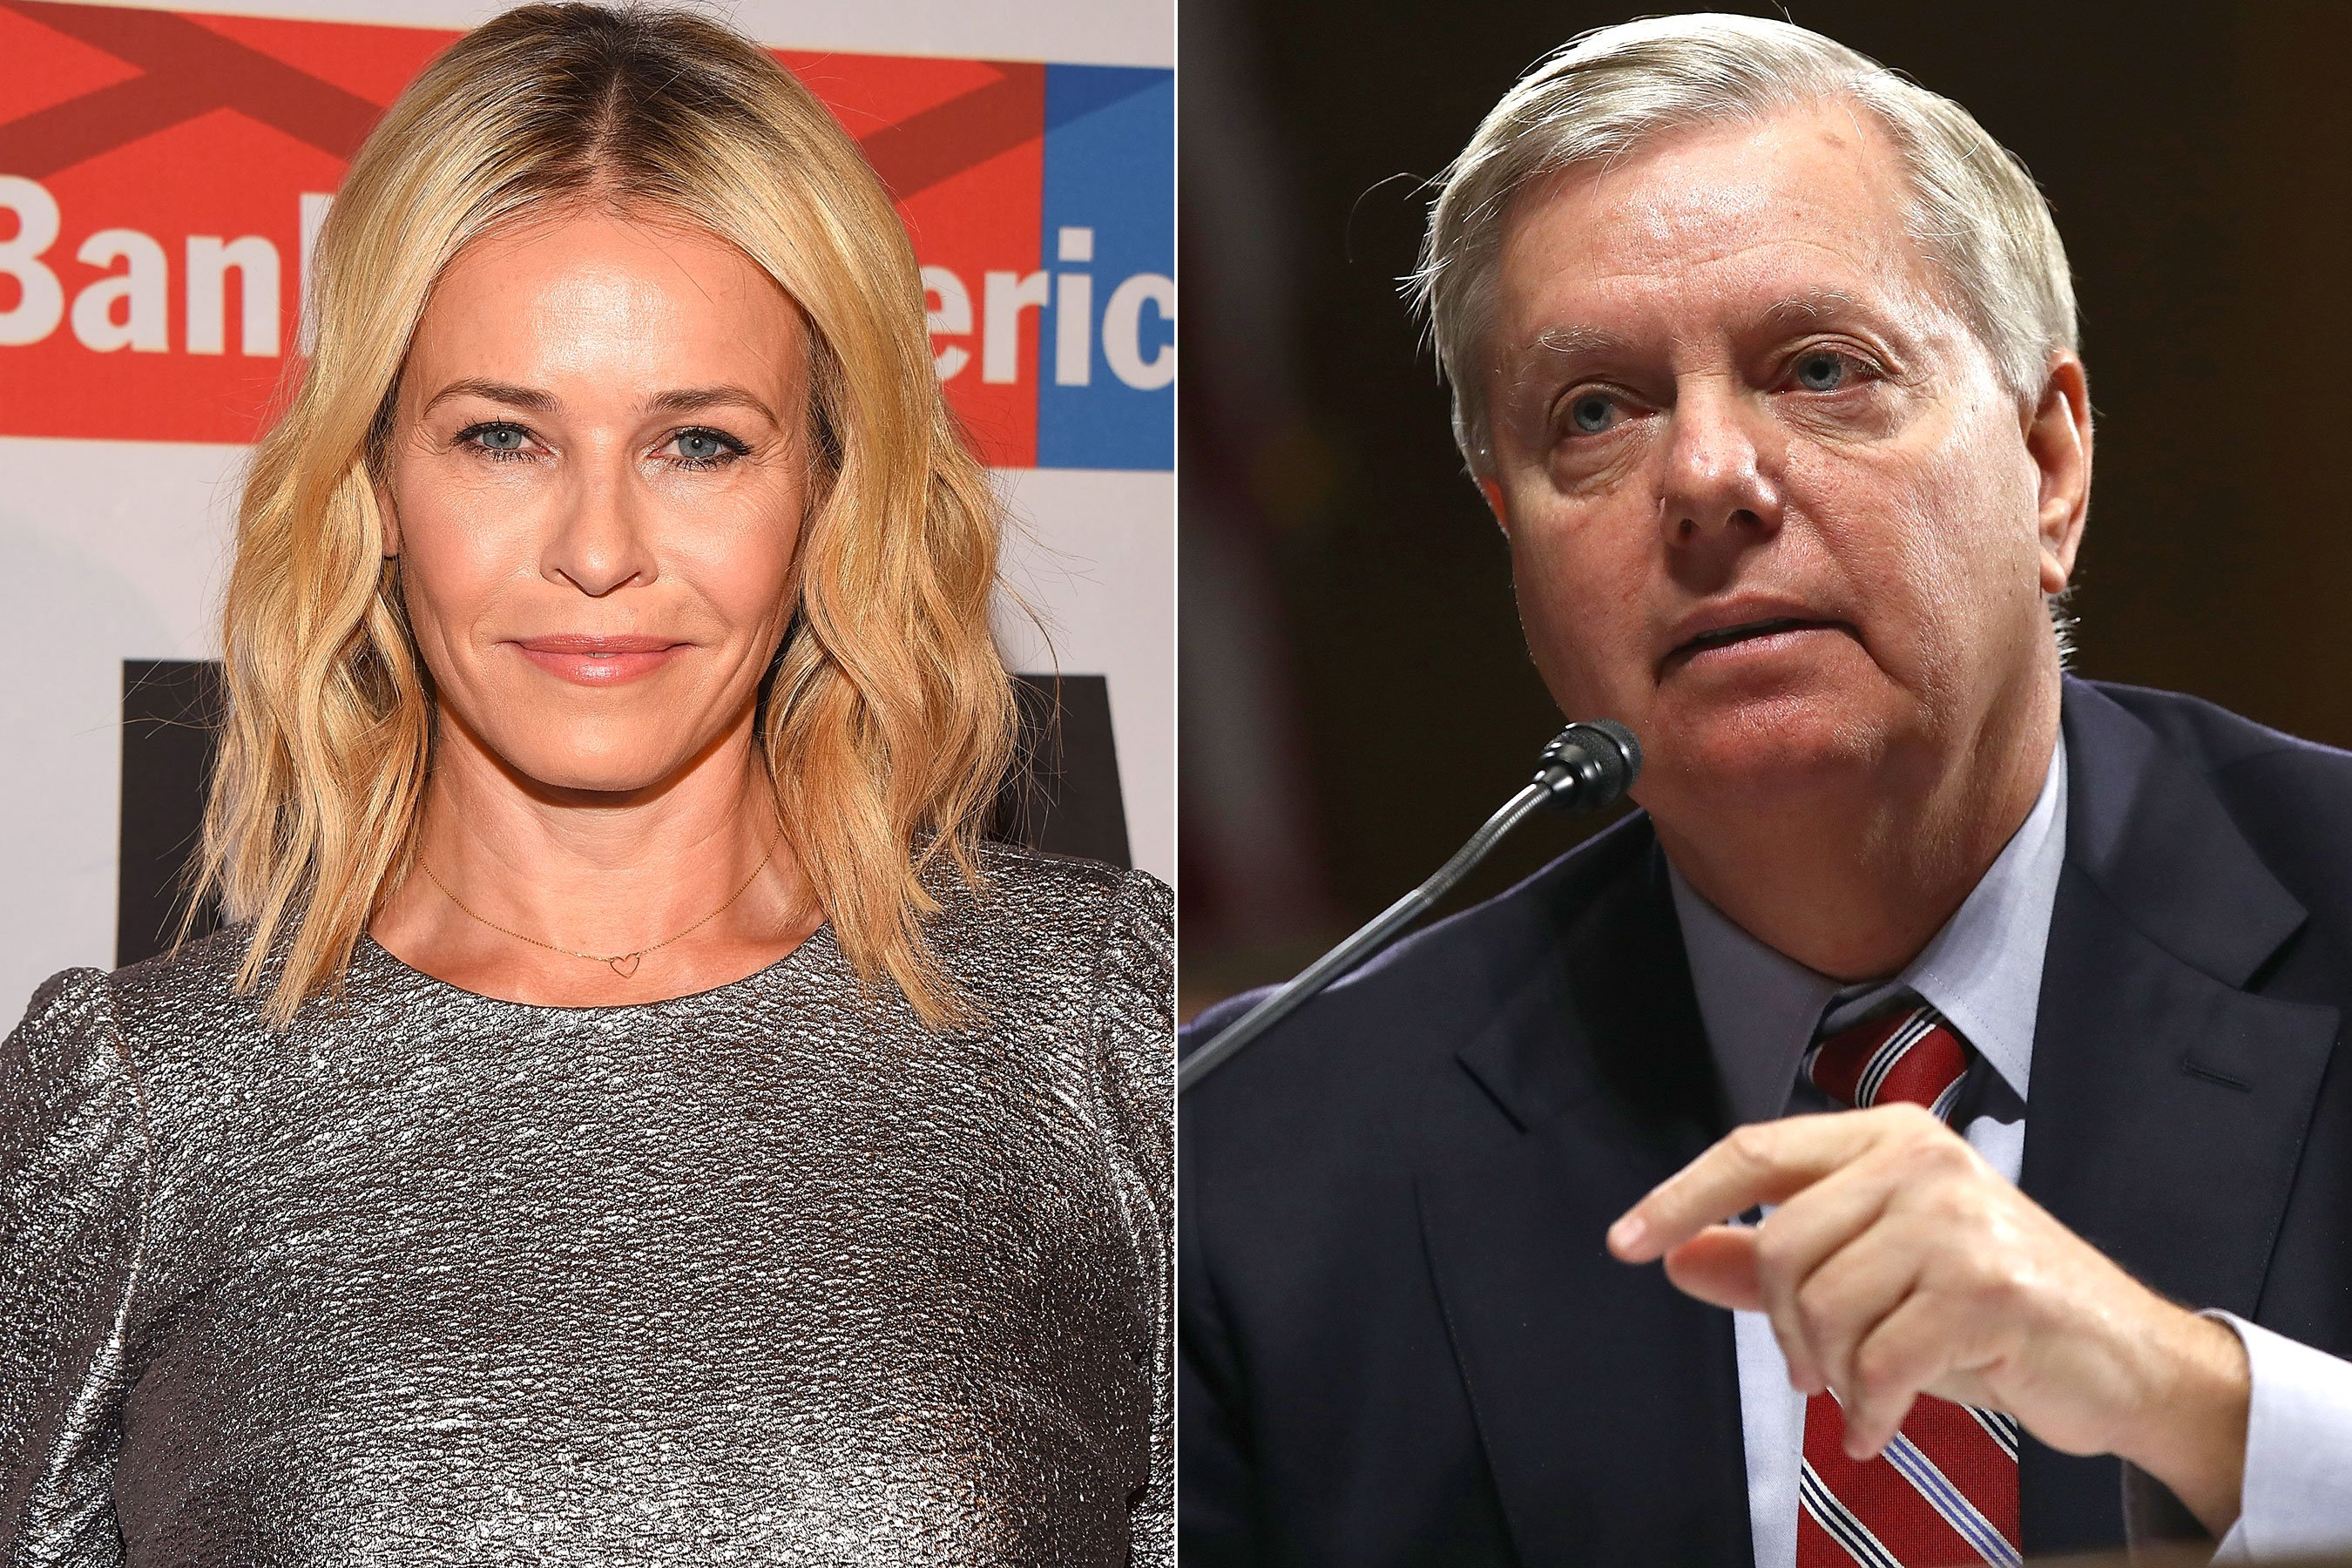 Chelsea Handler faces backlash for 'homophobic' Lindsey Graham tweet